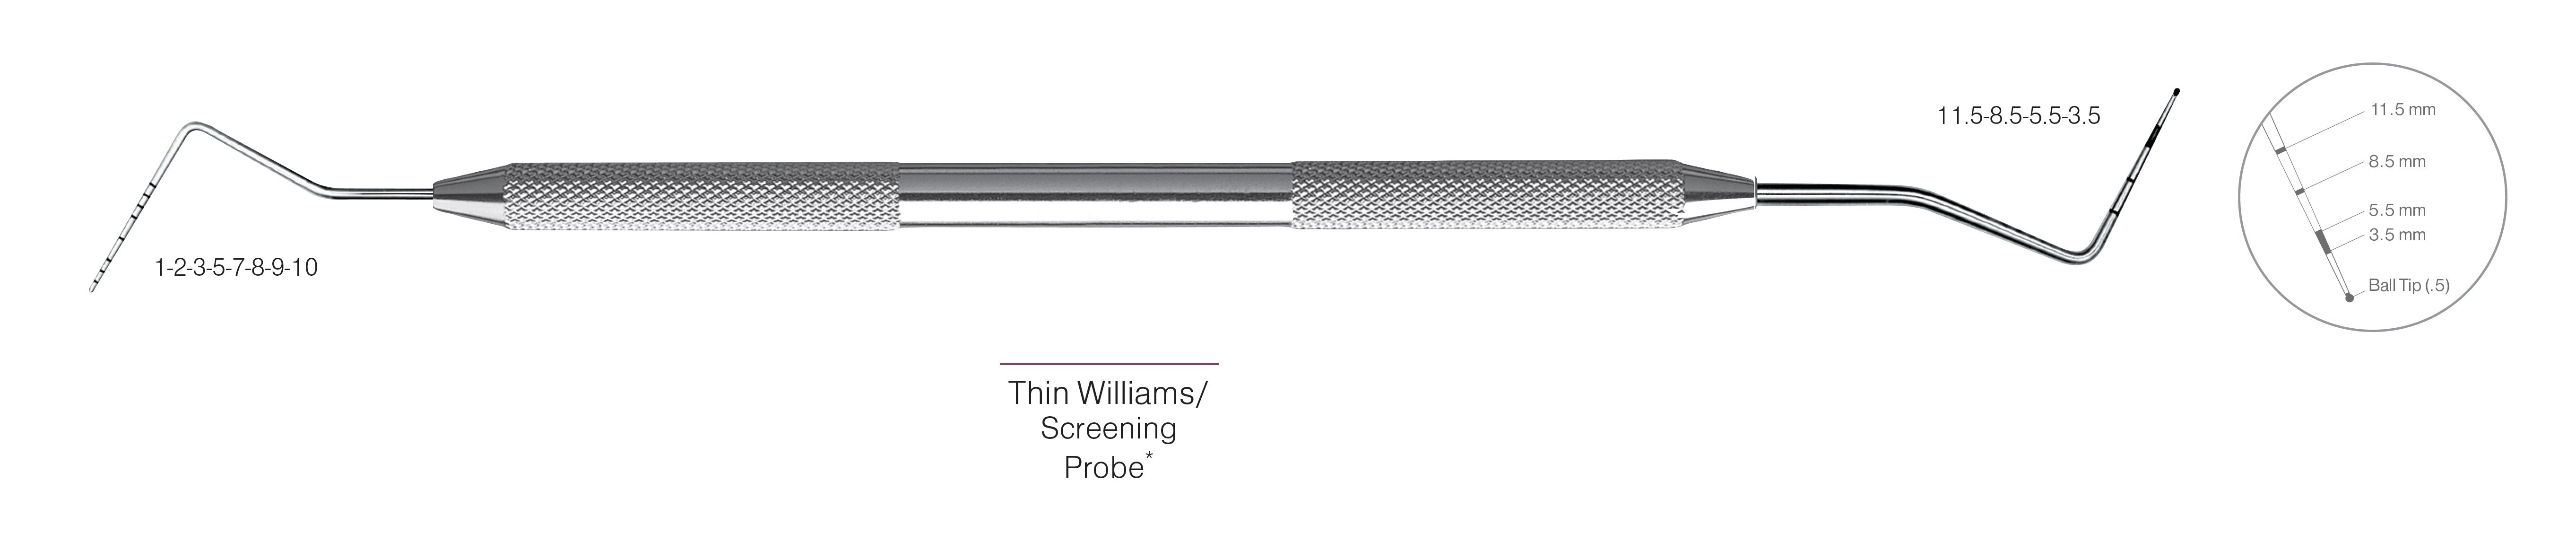 HF-PCPQOW11.5-31, DOUBLE-ENDED SCREENING PROBES Thin Williams/Screening Probe*, Black markings, Tip 1-2-3-5-7-8-9-10 mm & 11.5-8.5-5.5-3.5 mm, With Ball tip (0.5), Handle Round, Double Ended